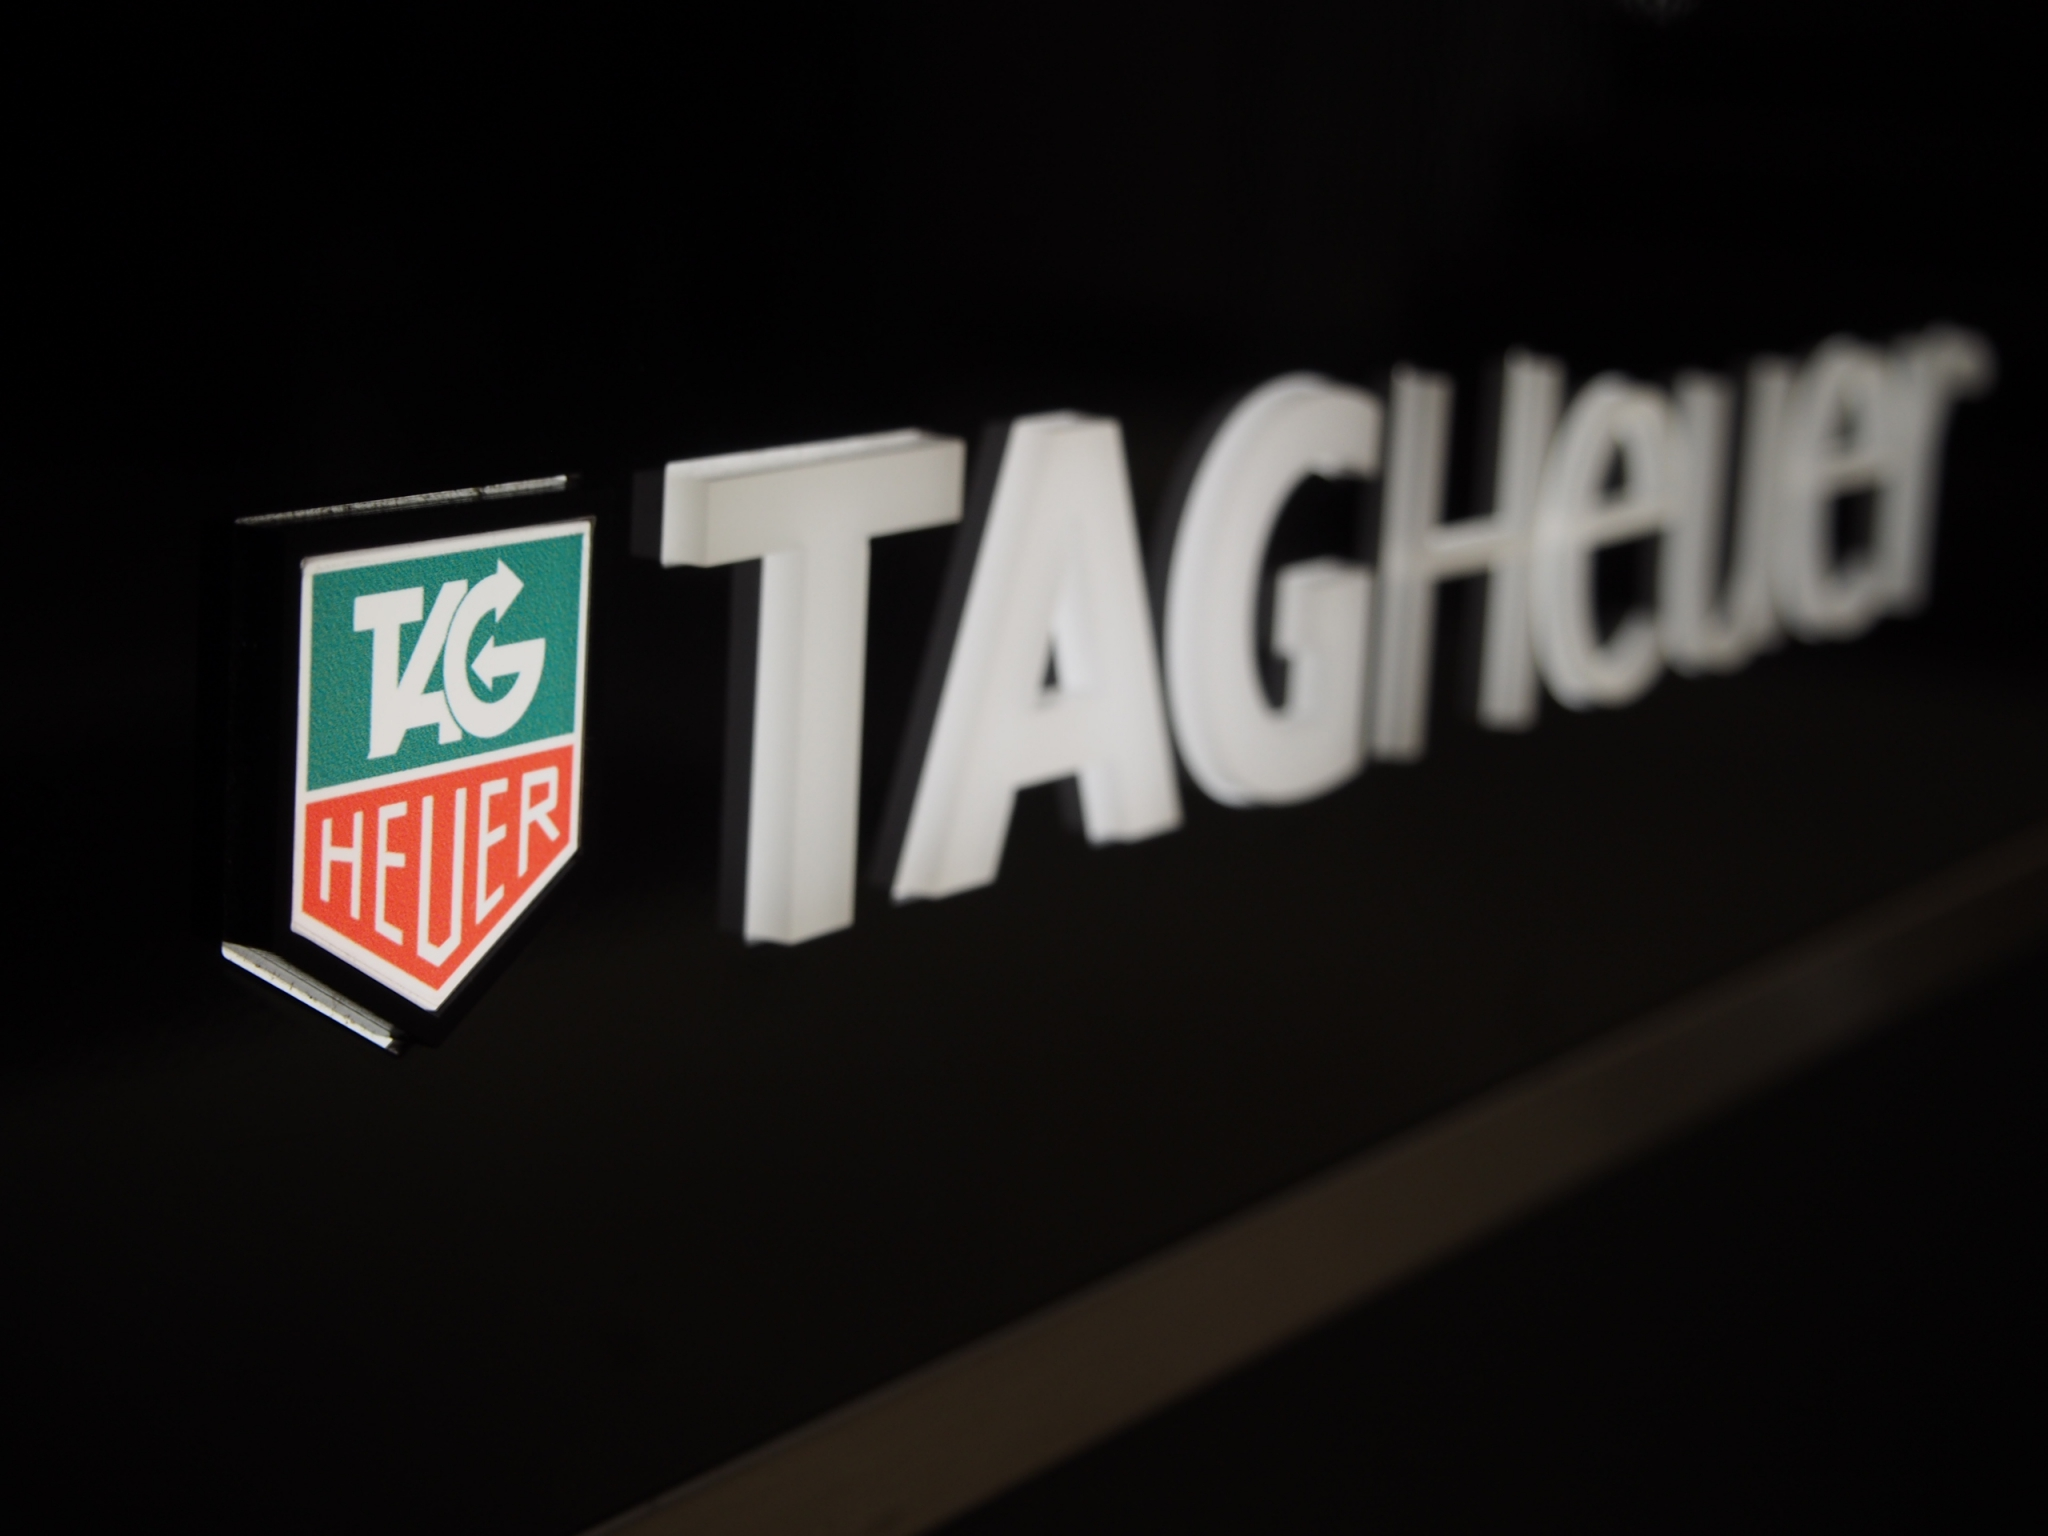 【TAG Heuer NEW COLLECTION】スーツにも合わせやすいダイバーズウォッチ!